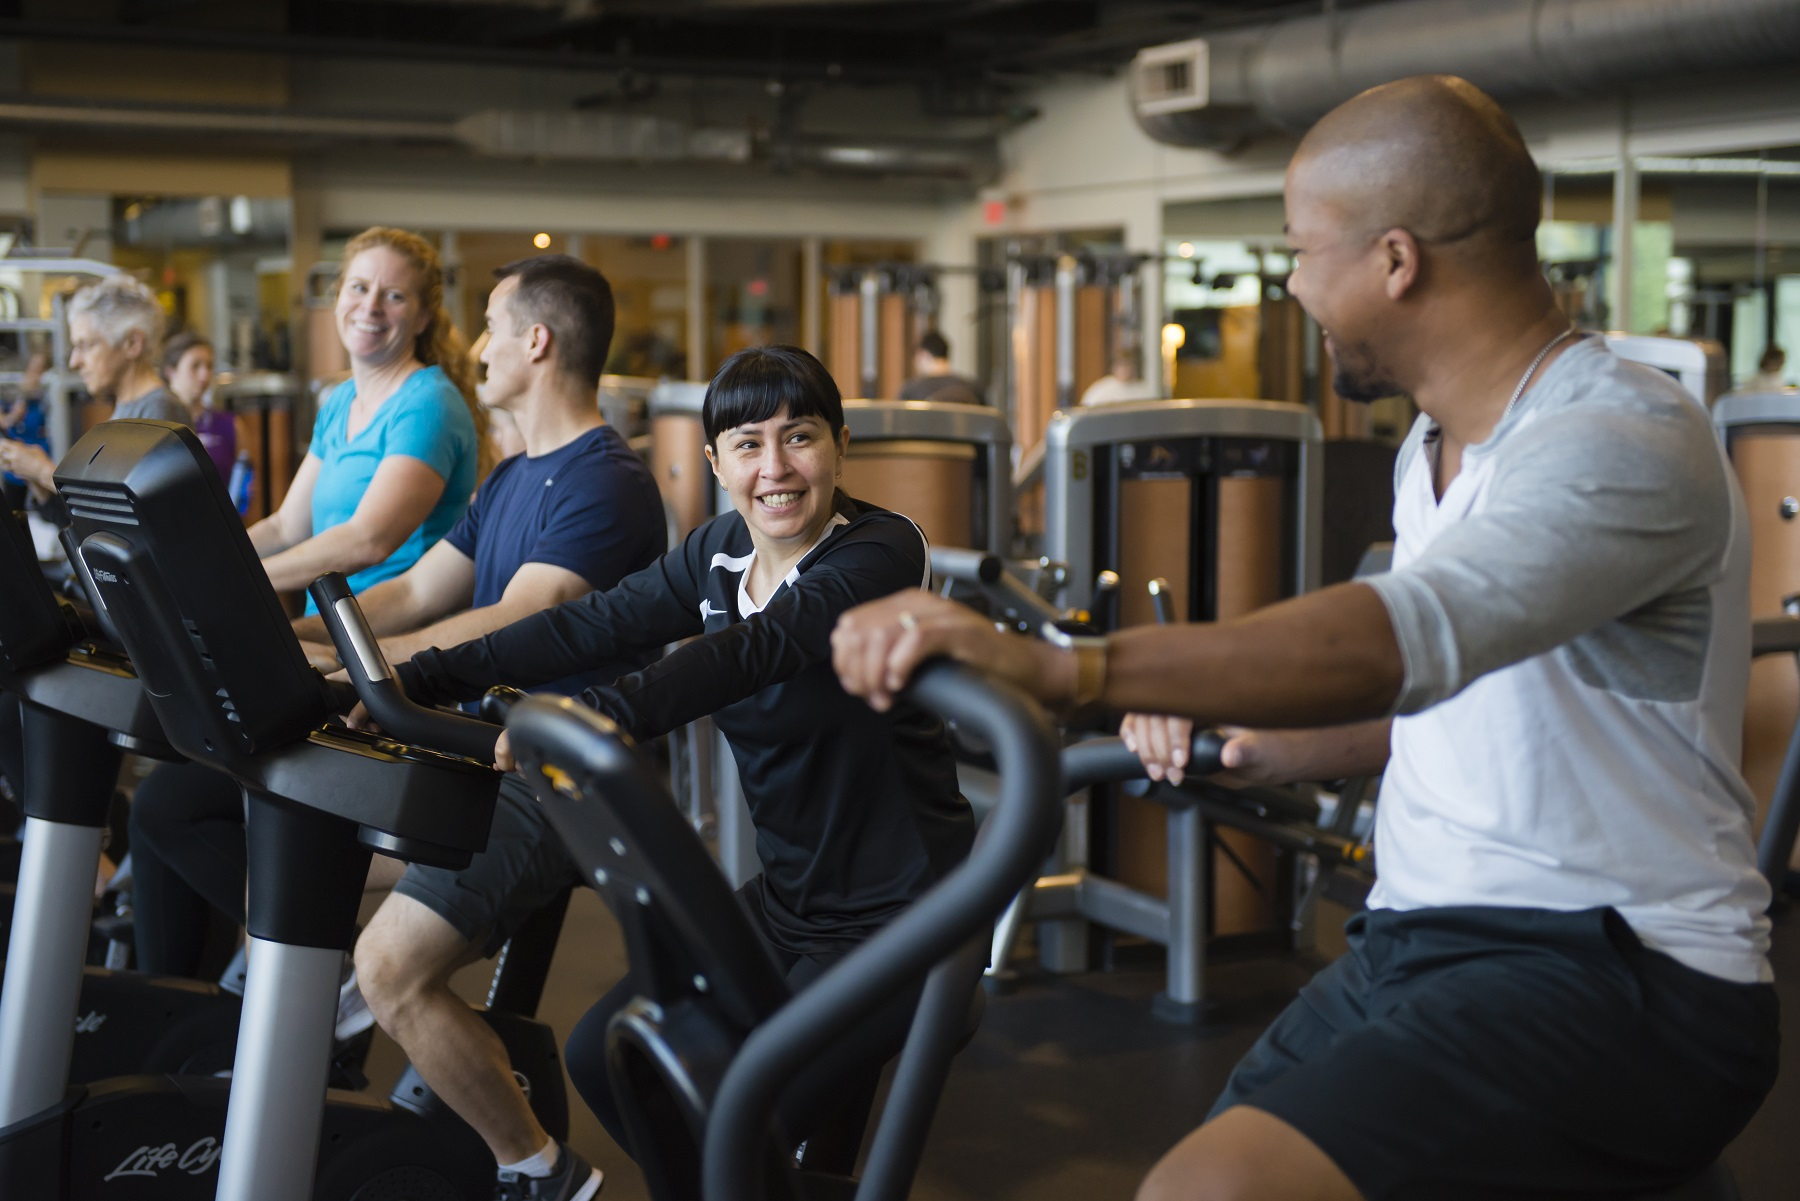 Row of 4 members on stationary bikes on march wellness & fitness center's fitness floor.